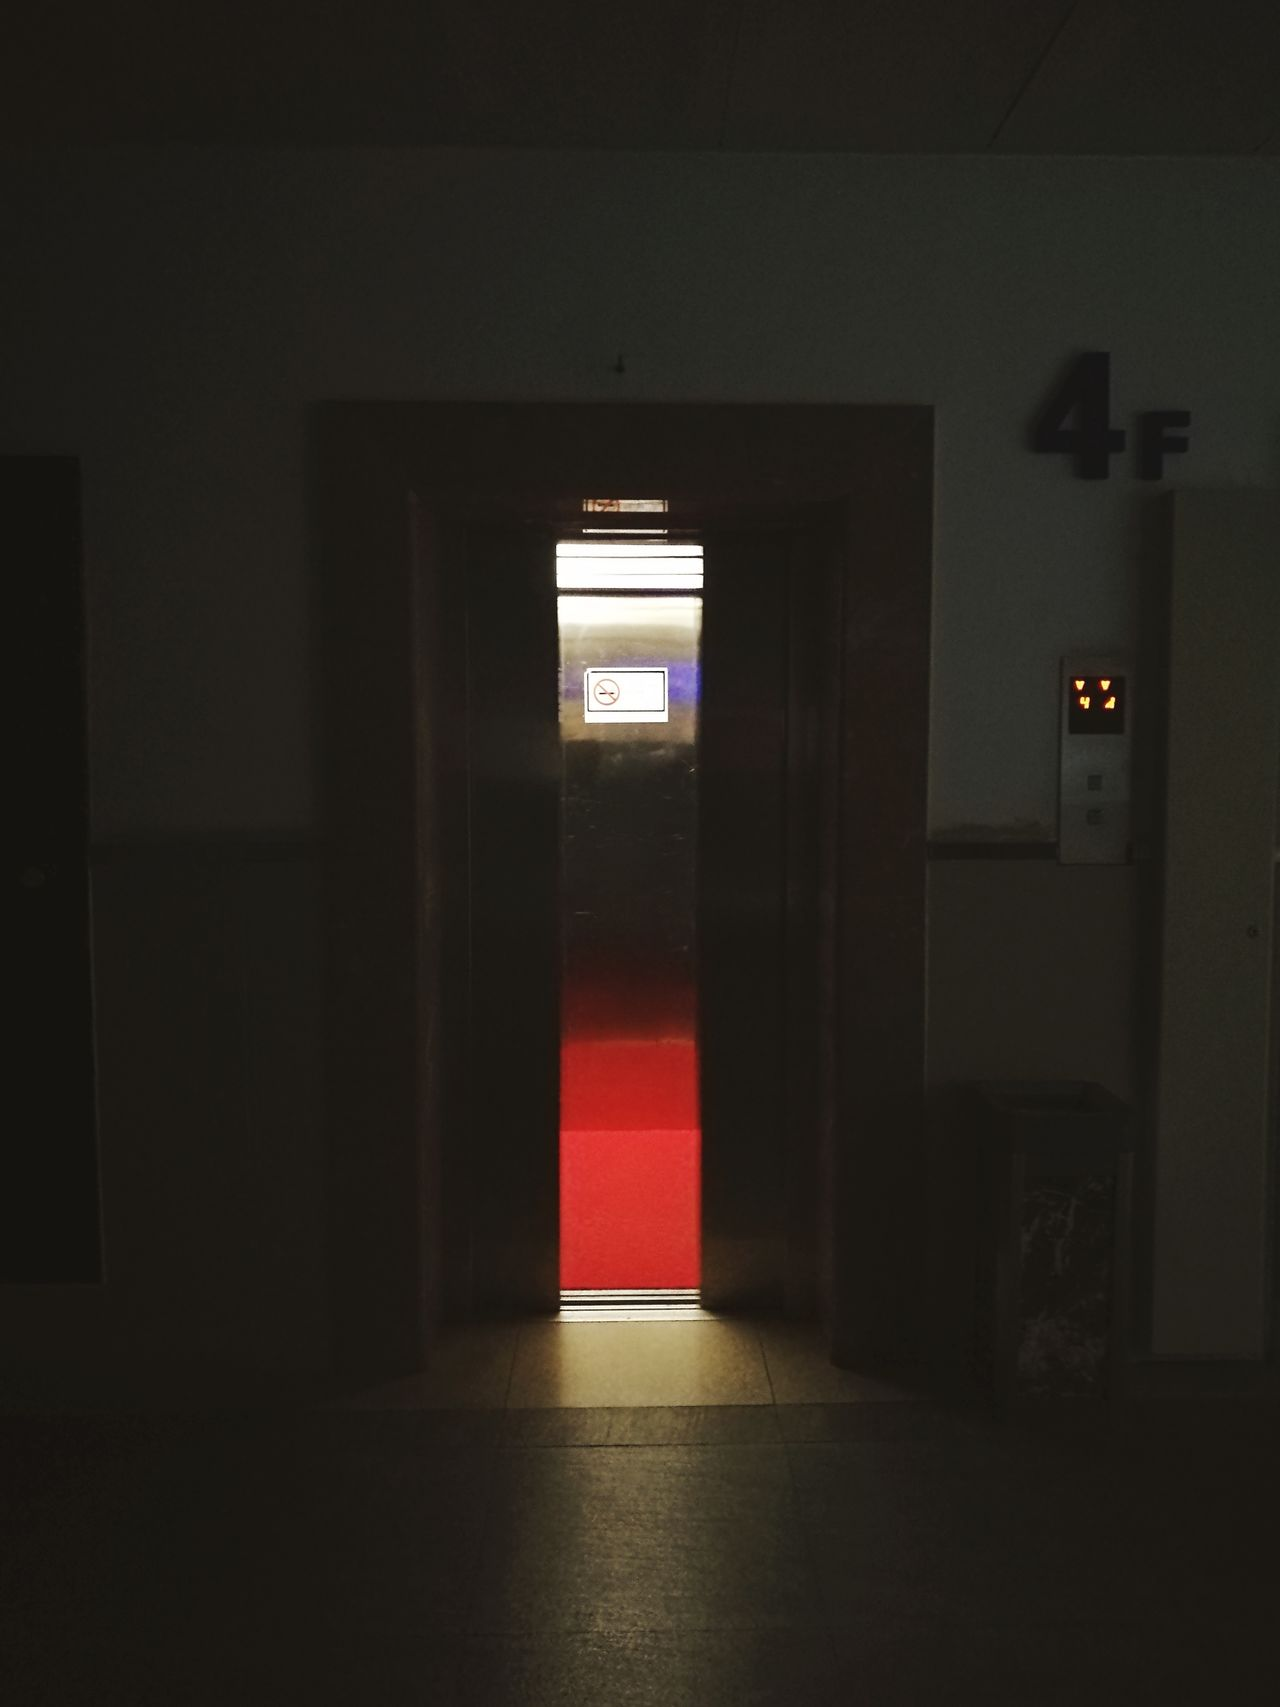 No People Red Indoors  Built Structure Illuminated Exit Sign Doorway Architecture Day